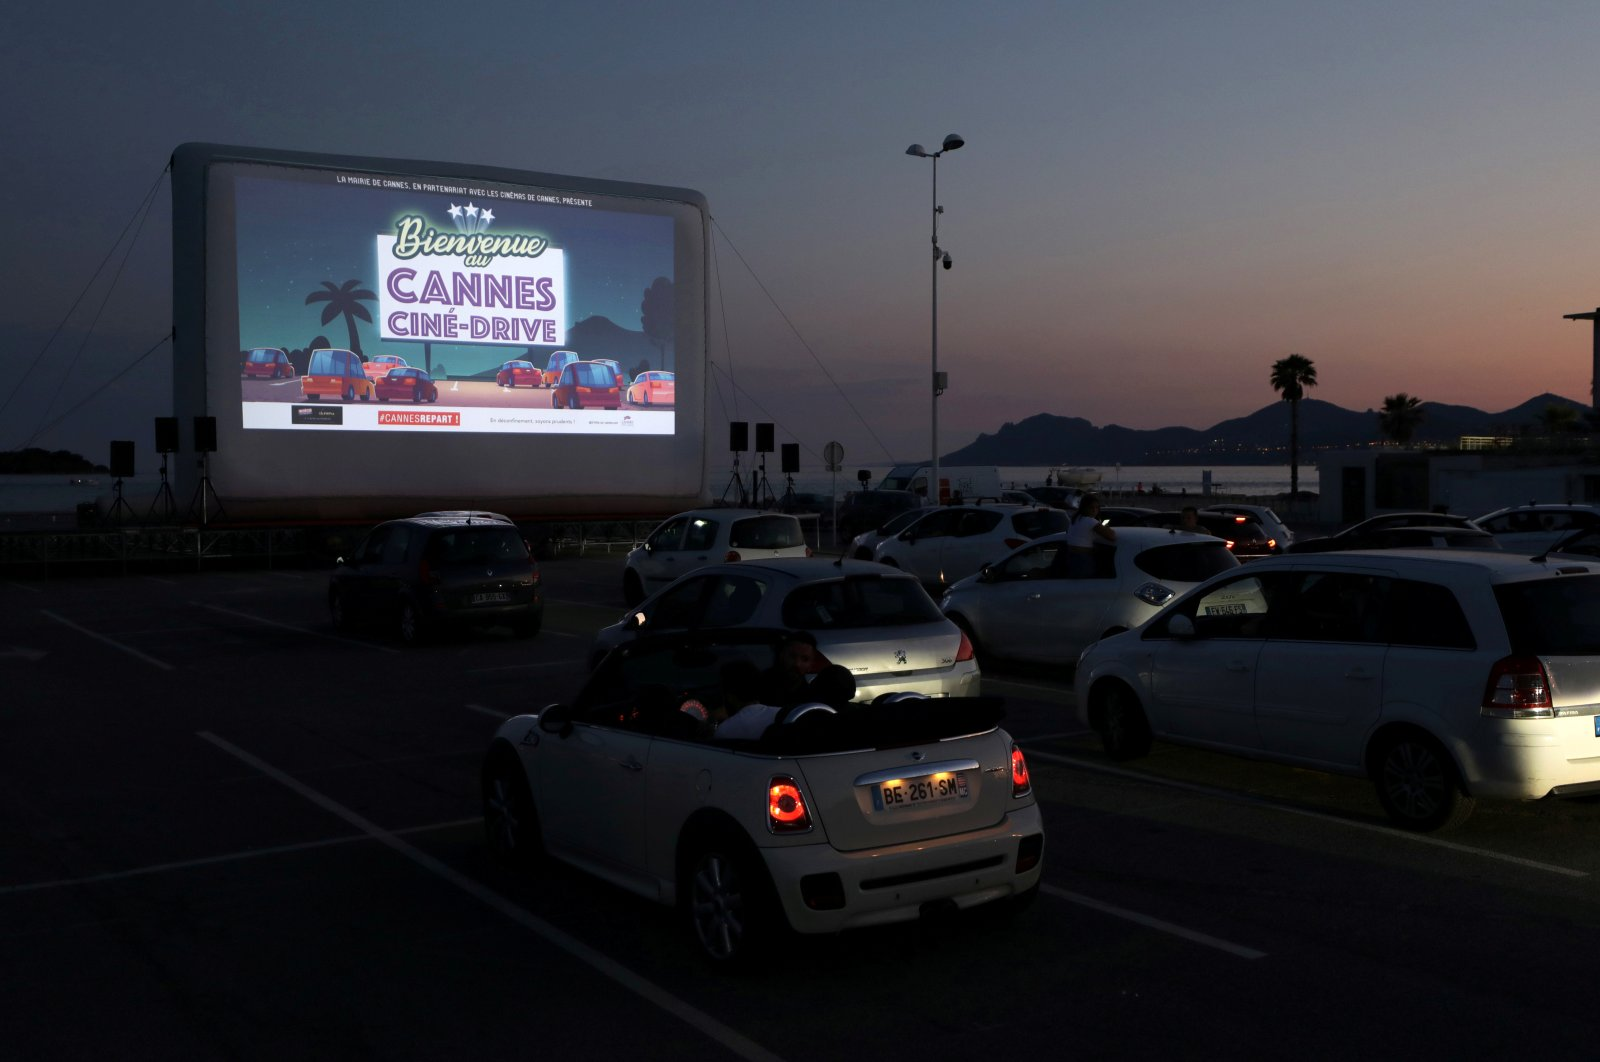 """People sit in their cars to watch the movie """"E.T. the Extra-Terrestrial"""" by Steven Spielberg at a drive-in cinema at la Pointe Croisette during the coronavirus outbreak, in Cannes, France, May 20, 2020. (REUTERS Photo)"""